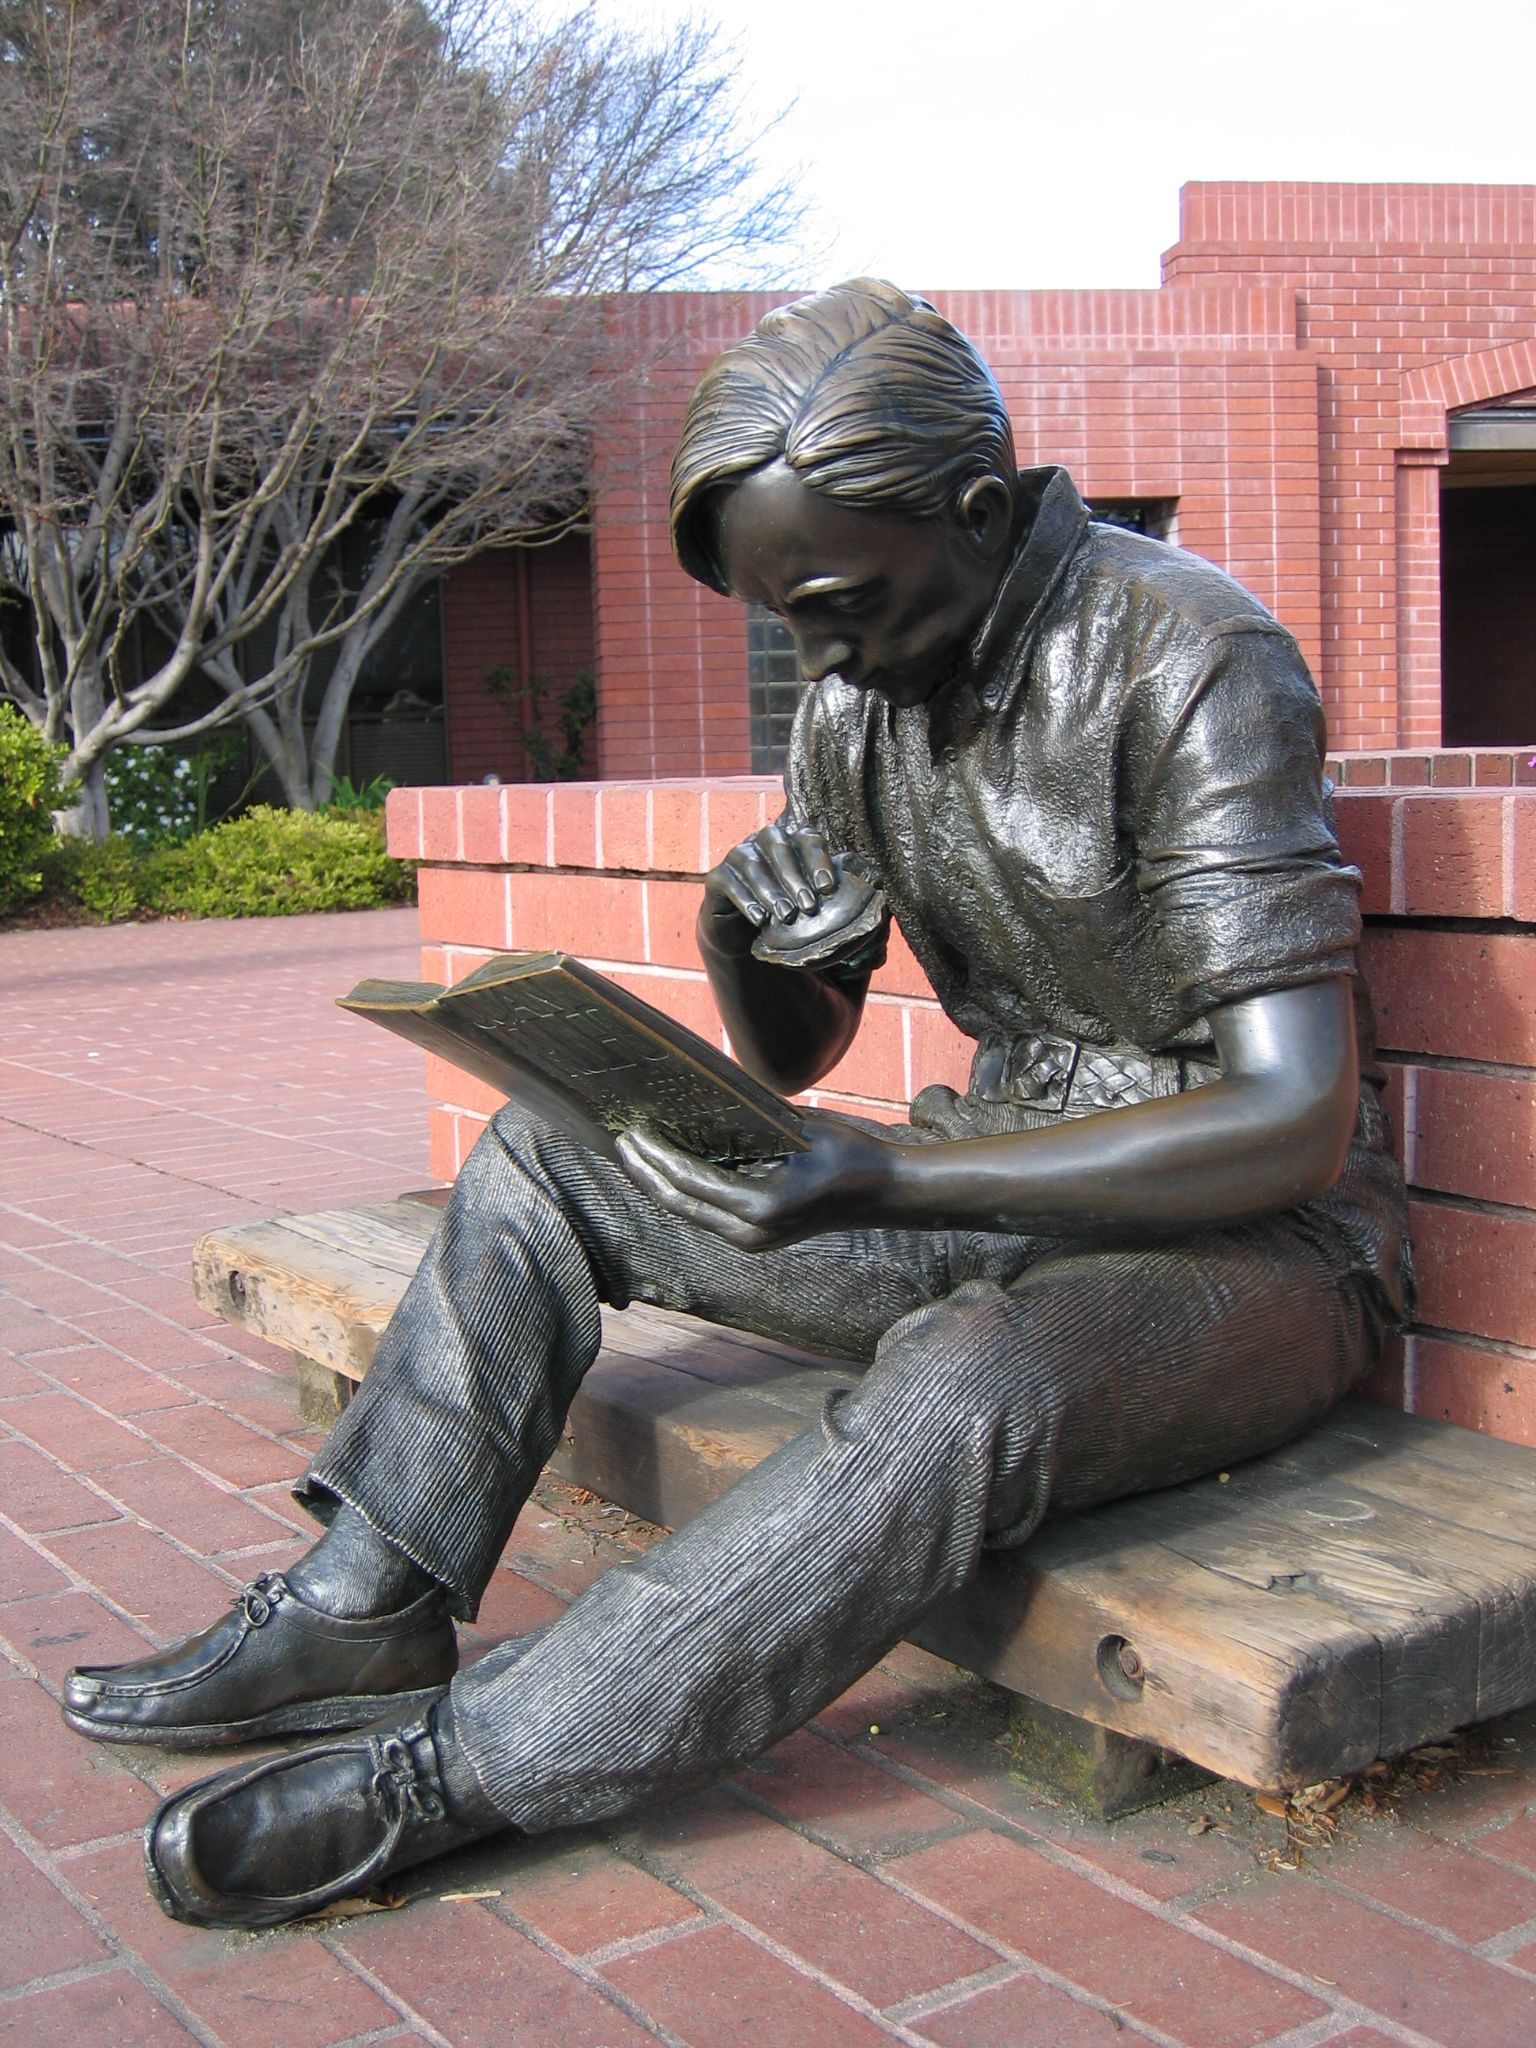 'Out to Lunch' statue by J. Seward Johnson (1979) - at the Sunnyvale, CA Public Library; this is one of eight editions of this statue